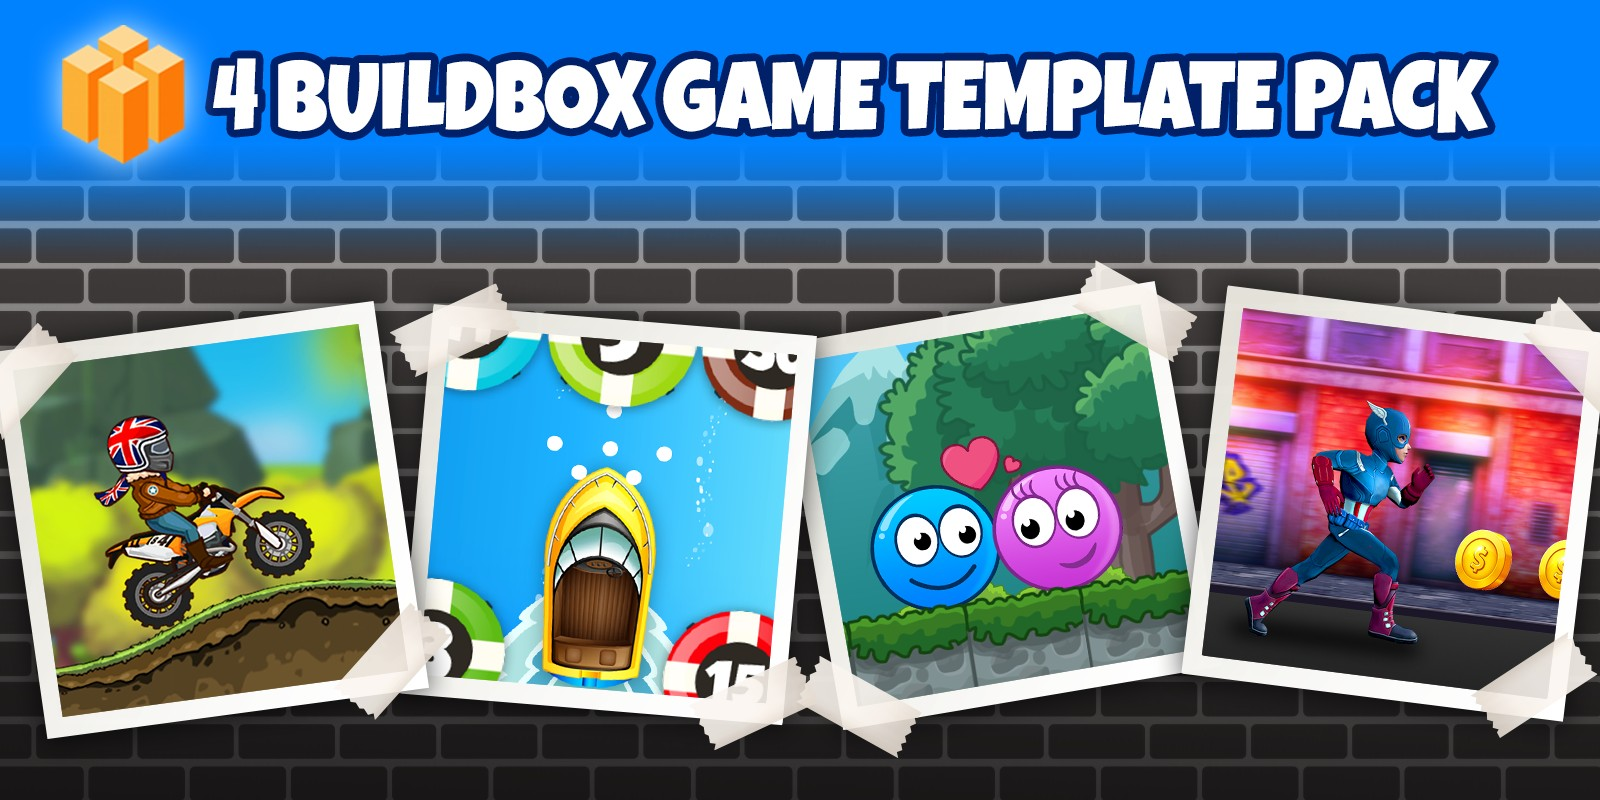 4 Buildbox Game Template Pack